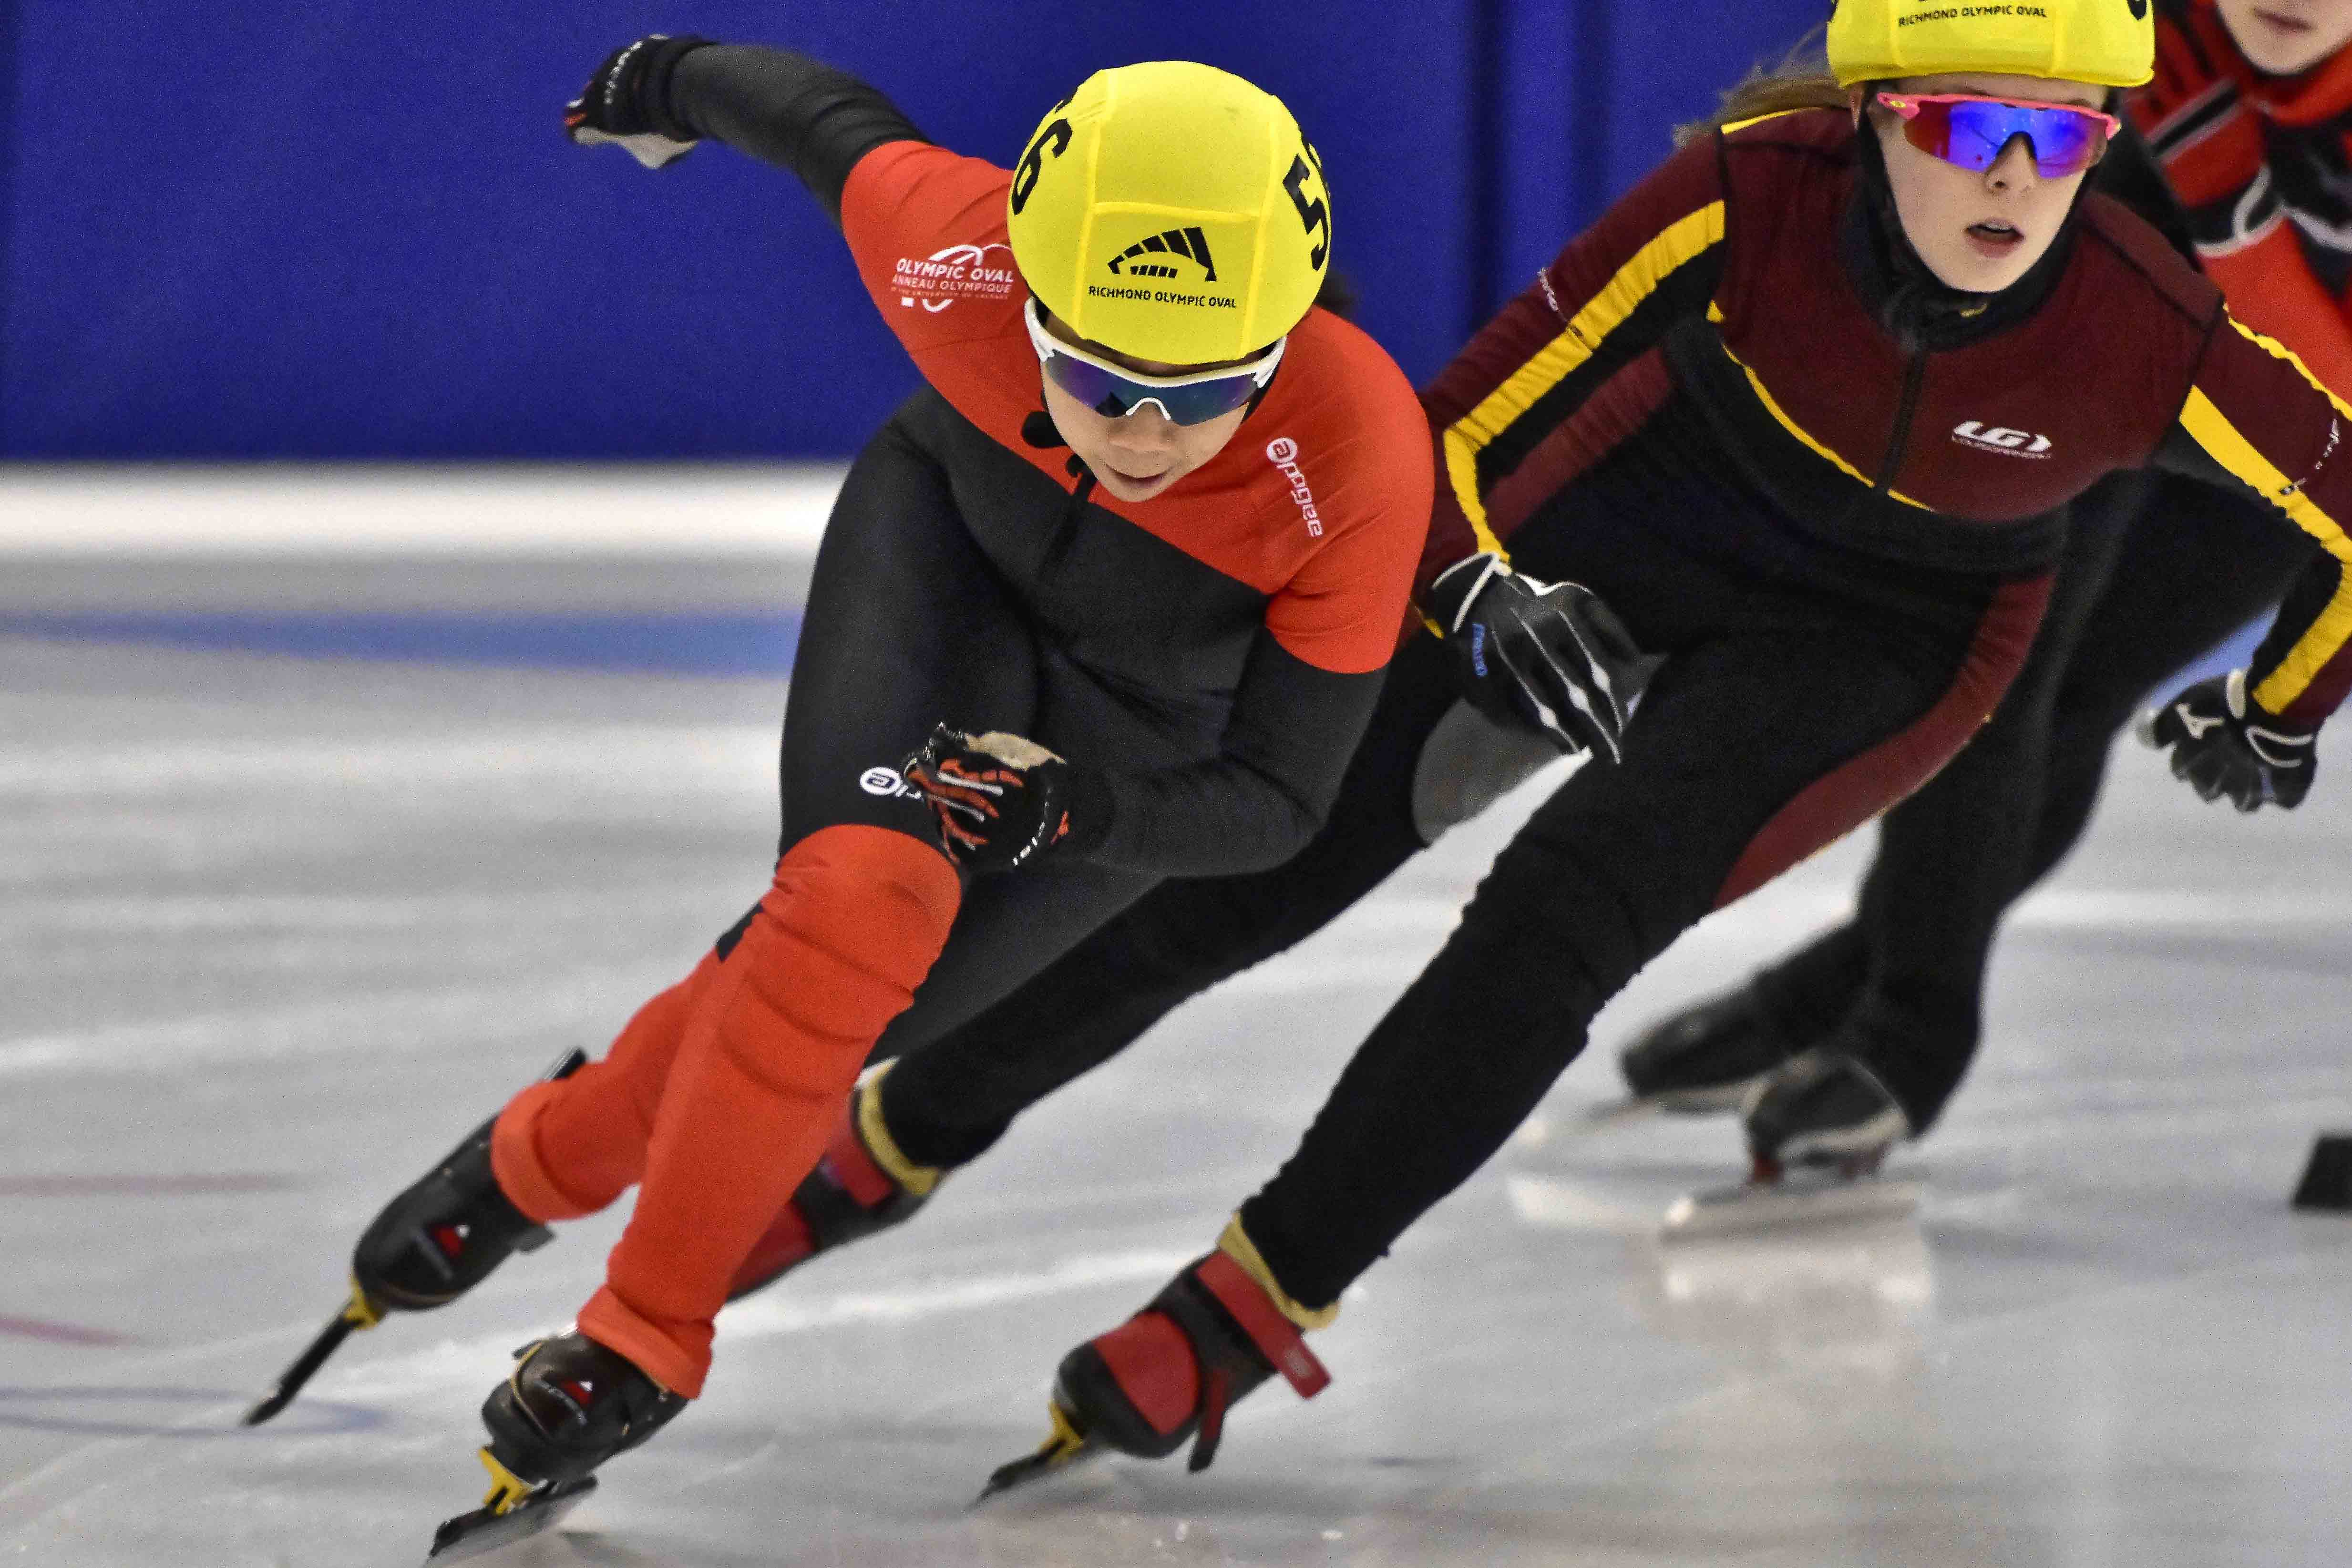 Brittany Yuen in a speed skating competition.